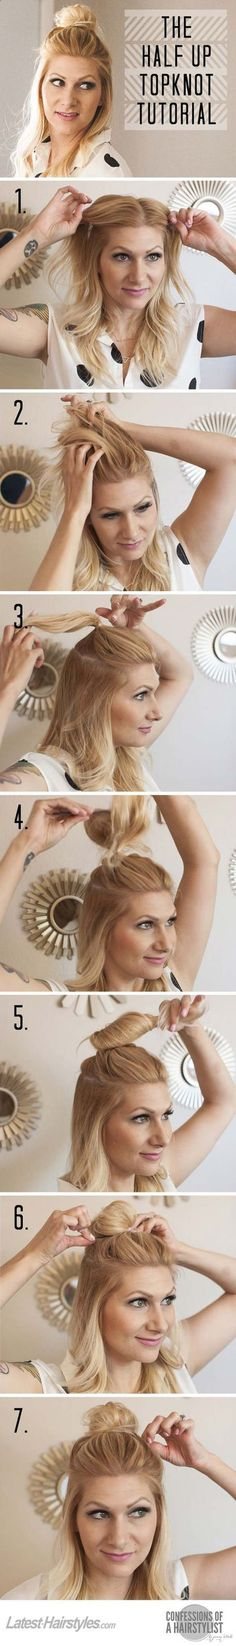 Secrets To Getting Your Girlfriend or Boyfriend Back - Cool and Easy DIY Hairstyles - The Half Up Top Knot - Quick and Easy Ideas for Back to School Styles for Medium, Short and Long Hair - Fun Tips and Best Step by Step Tutorials for Teens, Prom, Weddings, Special Occasions and Work. How To Win Your Ex Back Free Video Presentation Reveals Secrets To Getting Your Boyfriend Back #easyhairstylesforteens #shorthairstylesforteens #diyhairstyleseasy #easyhairstylesforprom